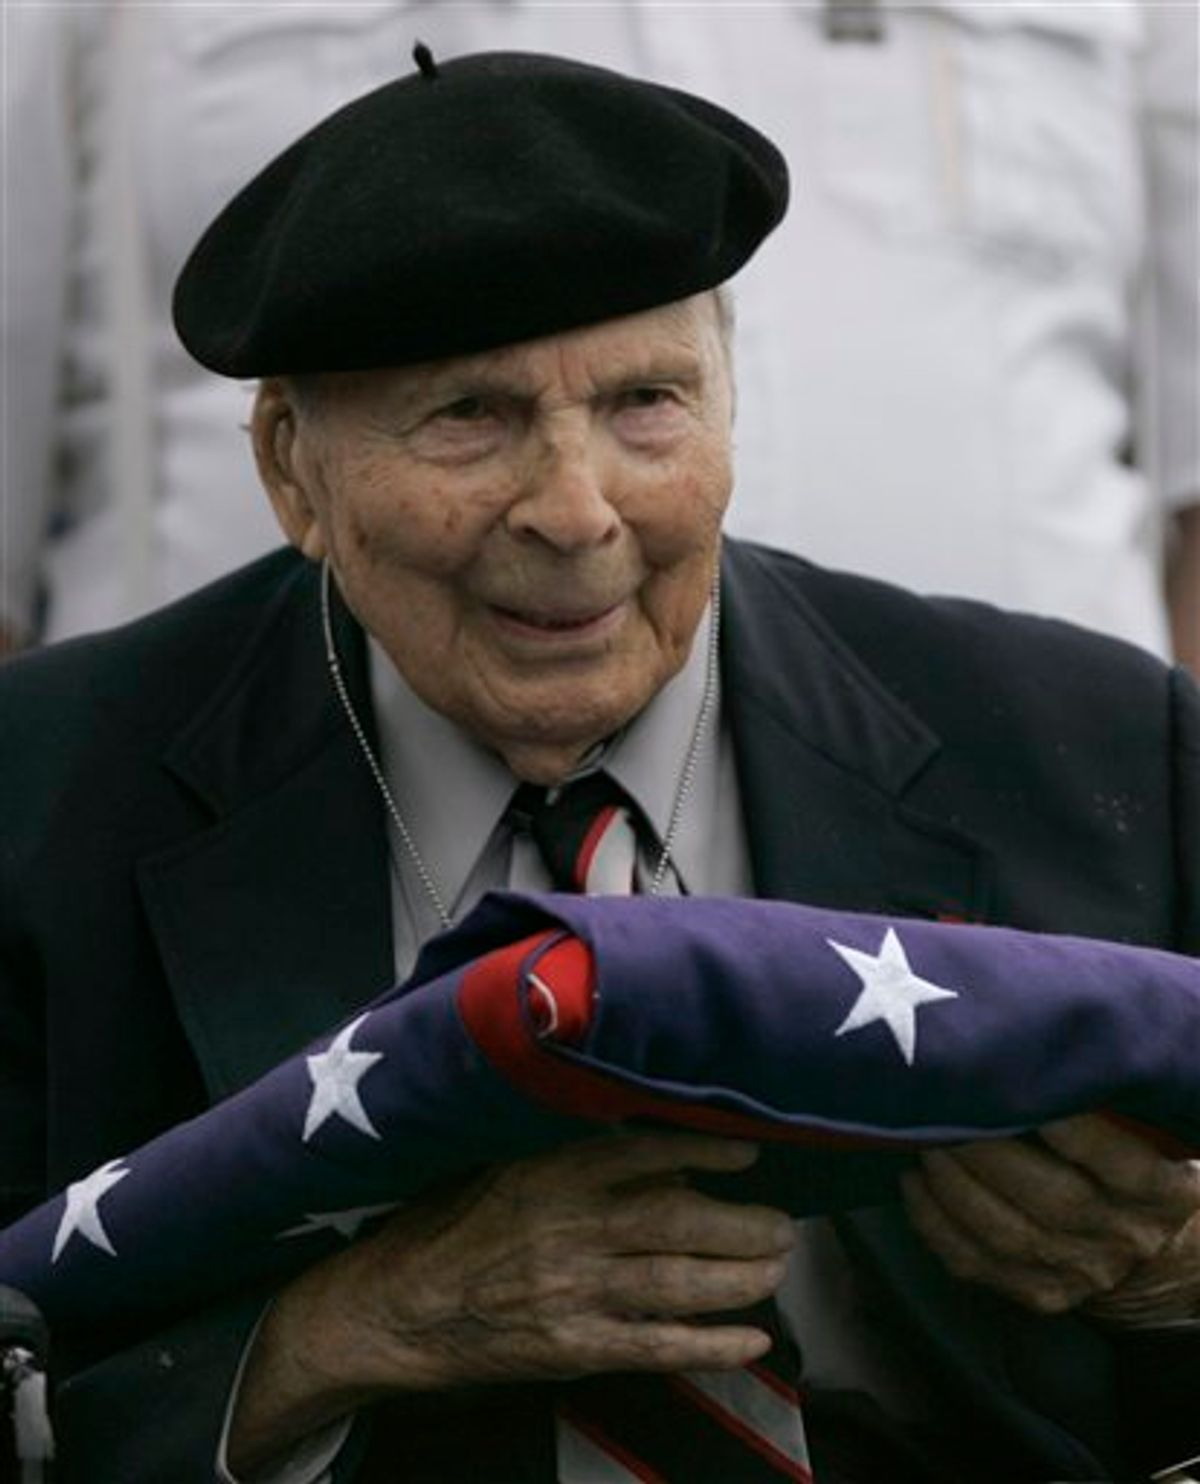 FILE -- In a May 26, 2008 file photo Frank Buckles receives an American flag during Memorial Day activities at the National World War I Museum in Kansas City, Mo. Biographer and family spokesman David DeJonge said in a statement that Frank Woodruff Buckles died early Sunday, Feb. 27, 2011 of natural causes in his home in Charles Town, W.Va.   (AP Photo/Charlie Riedel) (AP)